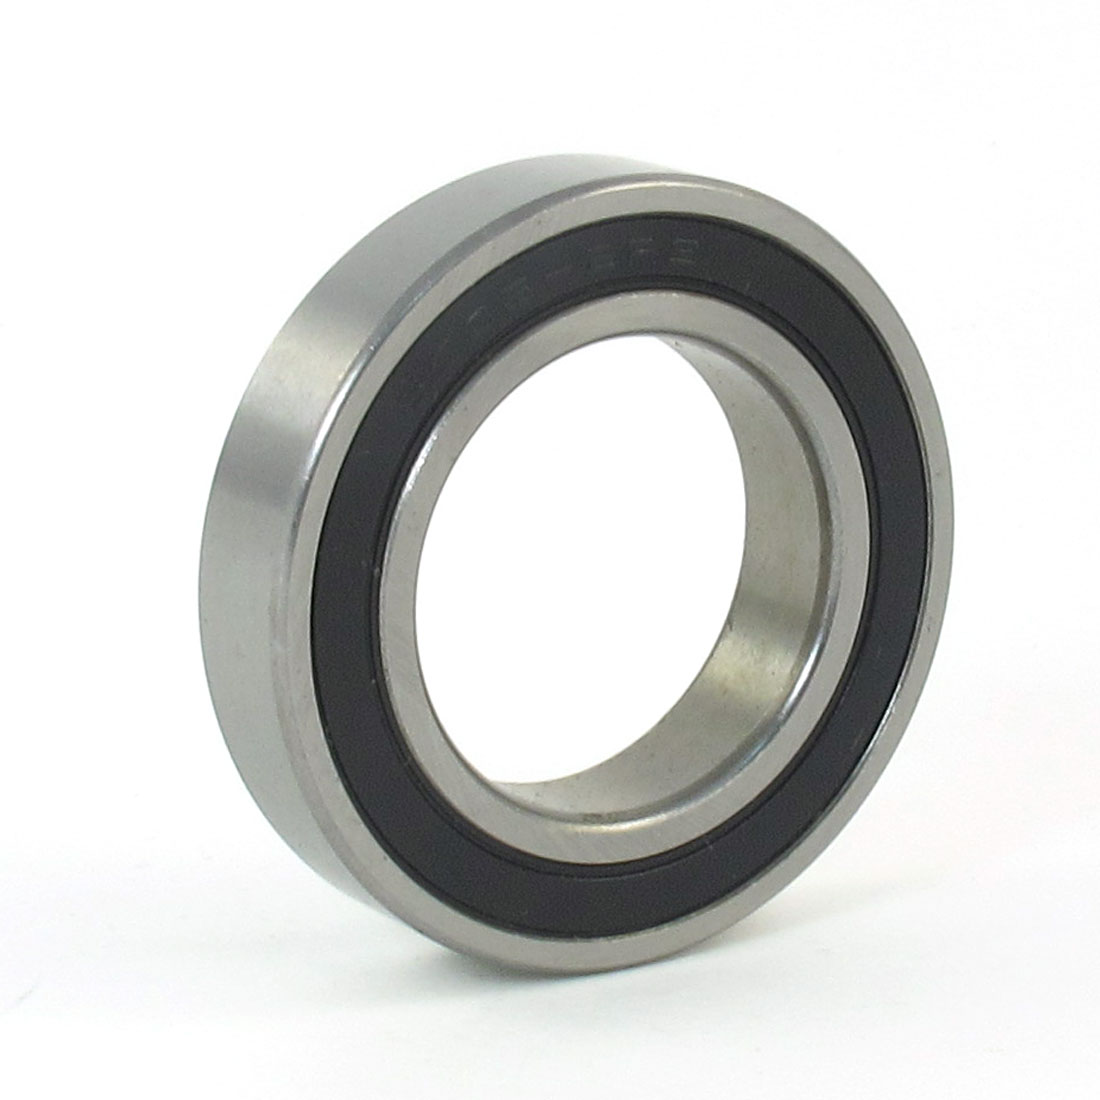 42mm x 25mm x 9mm Silver Tone Deep Groove 6905RS Ball Bearing Replacement